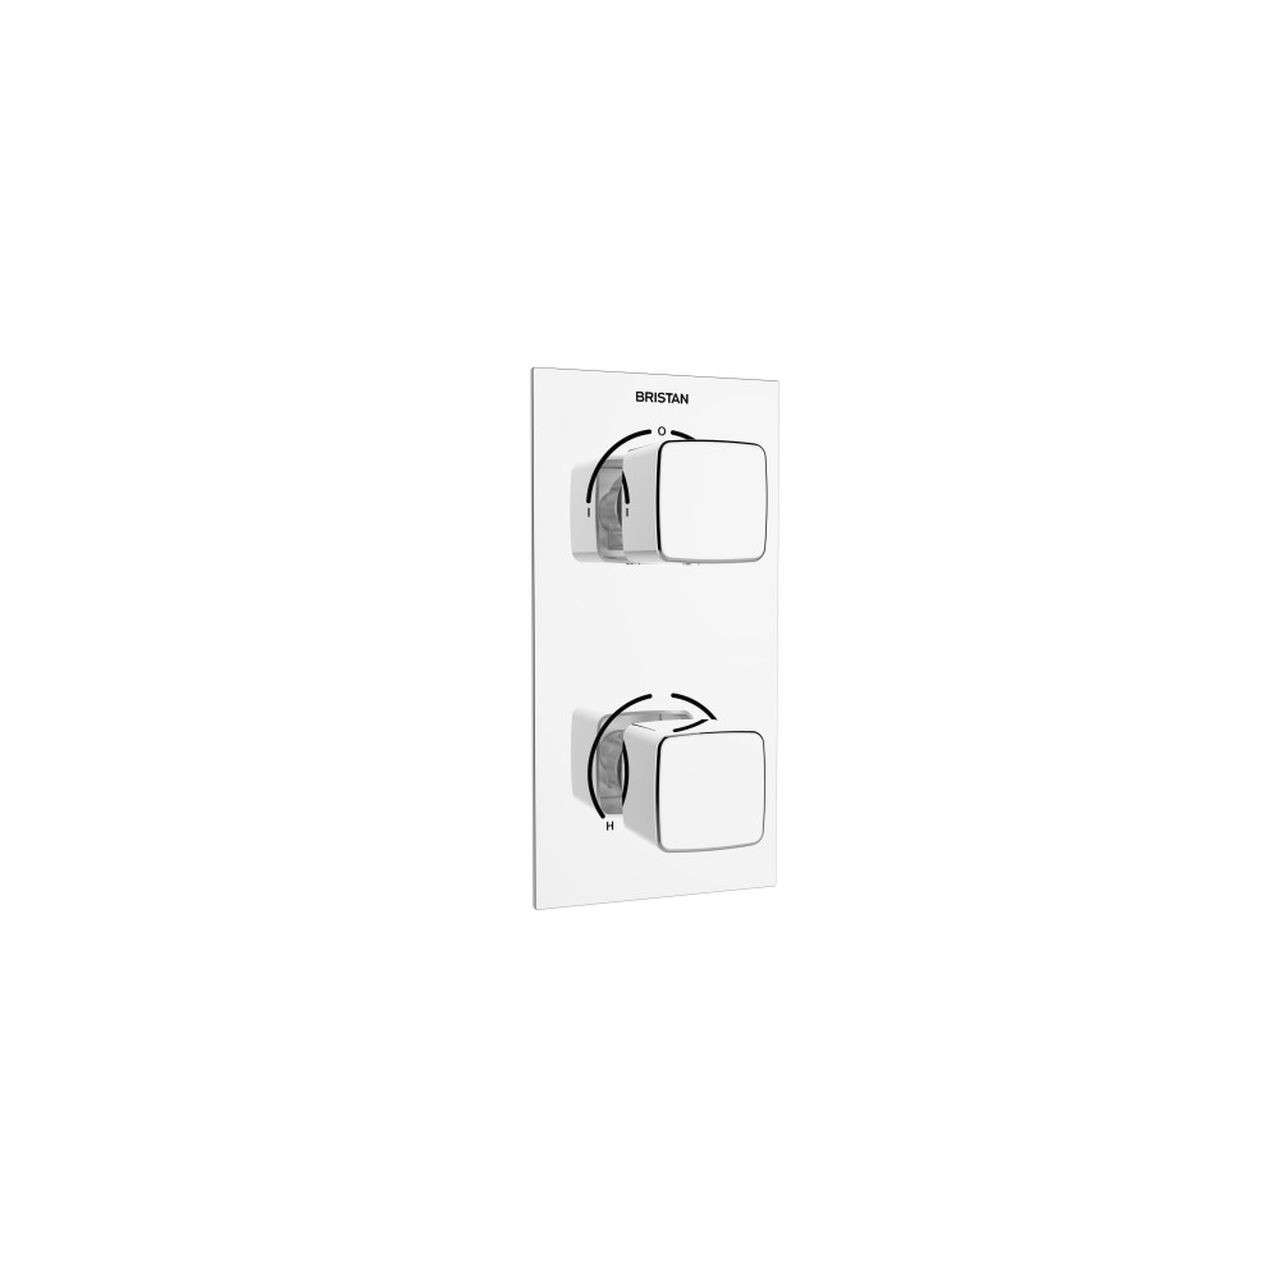 Bristan Cobalt Chrome Recessed Thermostatic Dual Control Shower Valve with Integral Diverter - COB-SHCDIV-C